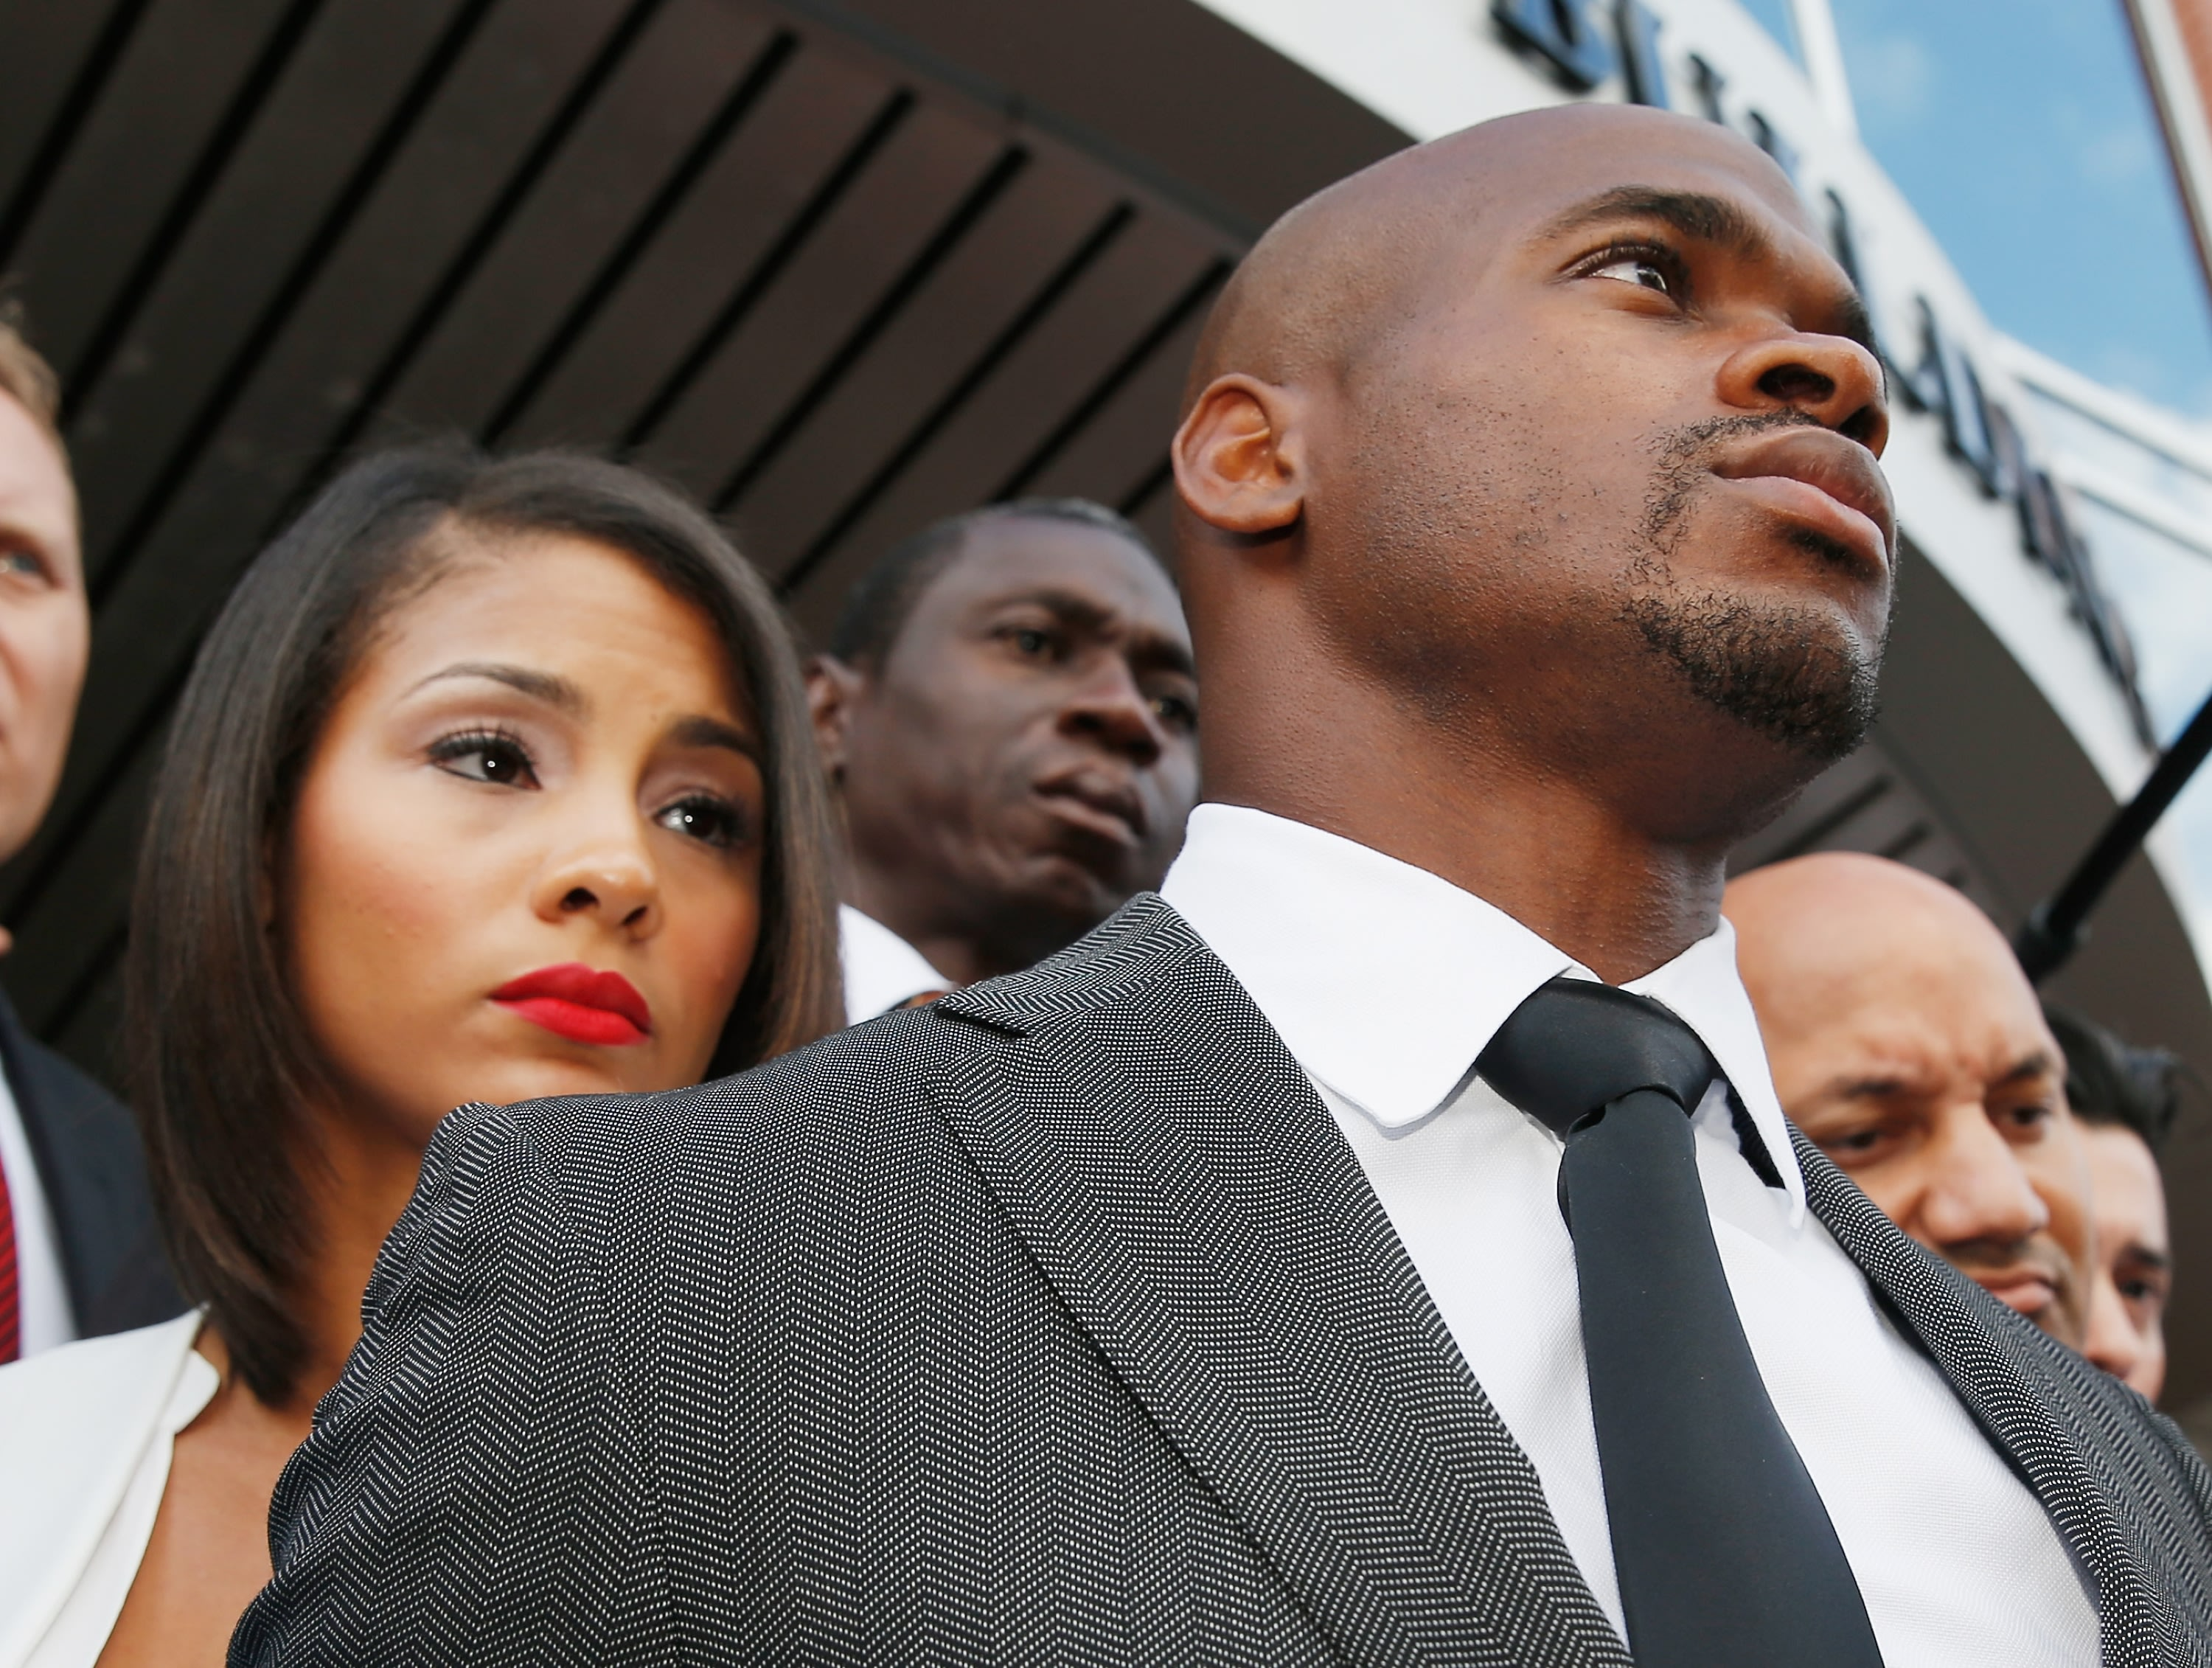 CONROE, TX - OCTOBER 08:  NFL player Adrian Peterson of the Minnesota Vikings waits with his wife Ashley Brown after making a court appearance at the Montgomery County municipal building on October 8, 2014 in Conroe, Texas. Peterson did not enter a plea, and after about an hour in the courtroom the hearing was reset. A tentative trial date was set for Dec. 1. Petersen is facing charges of reckless or negligent injury to a child.  (Photo by Scott Halleran/Getty Images)